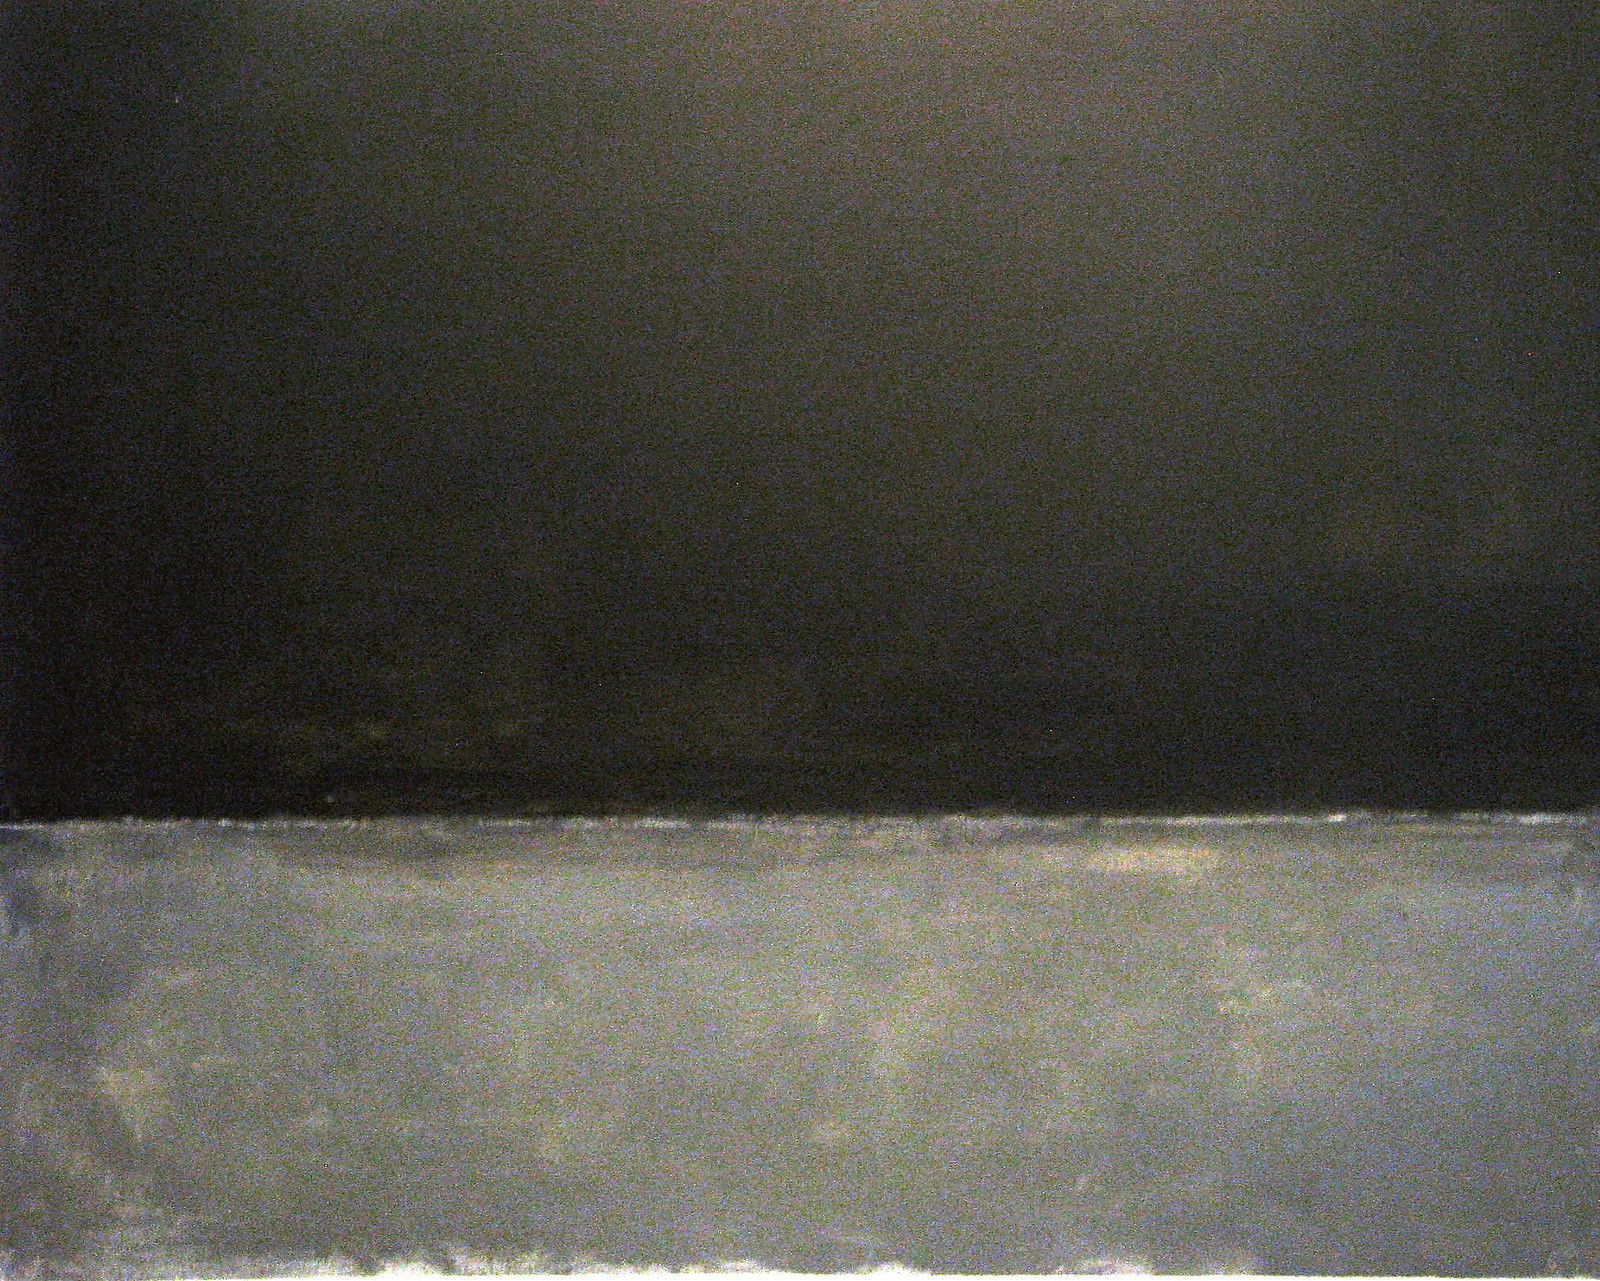 Mark Rothko, Untitled (Black on Grey), 1970 | by ekenitr